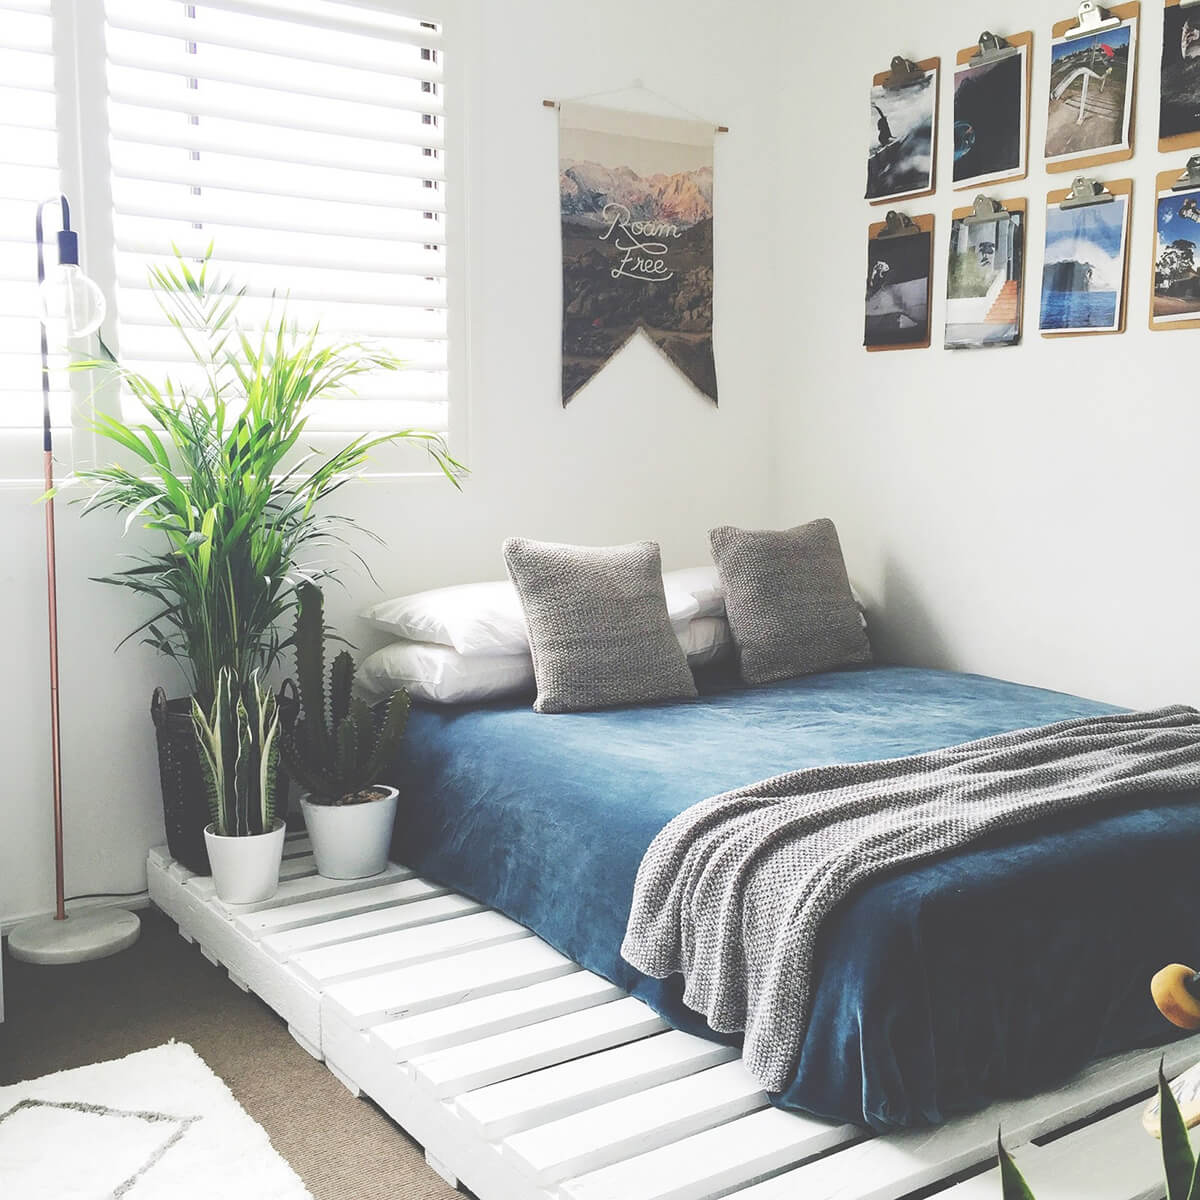 20 Best DIY Pallet Bed Frame Ideas to Update Your Bedroom ... on Bedroom Pallet Ideas  id=24438